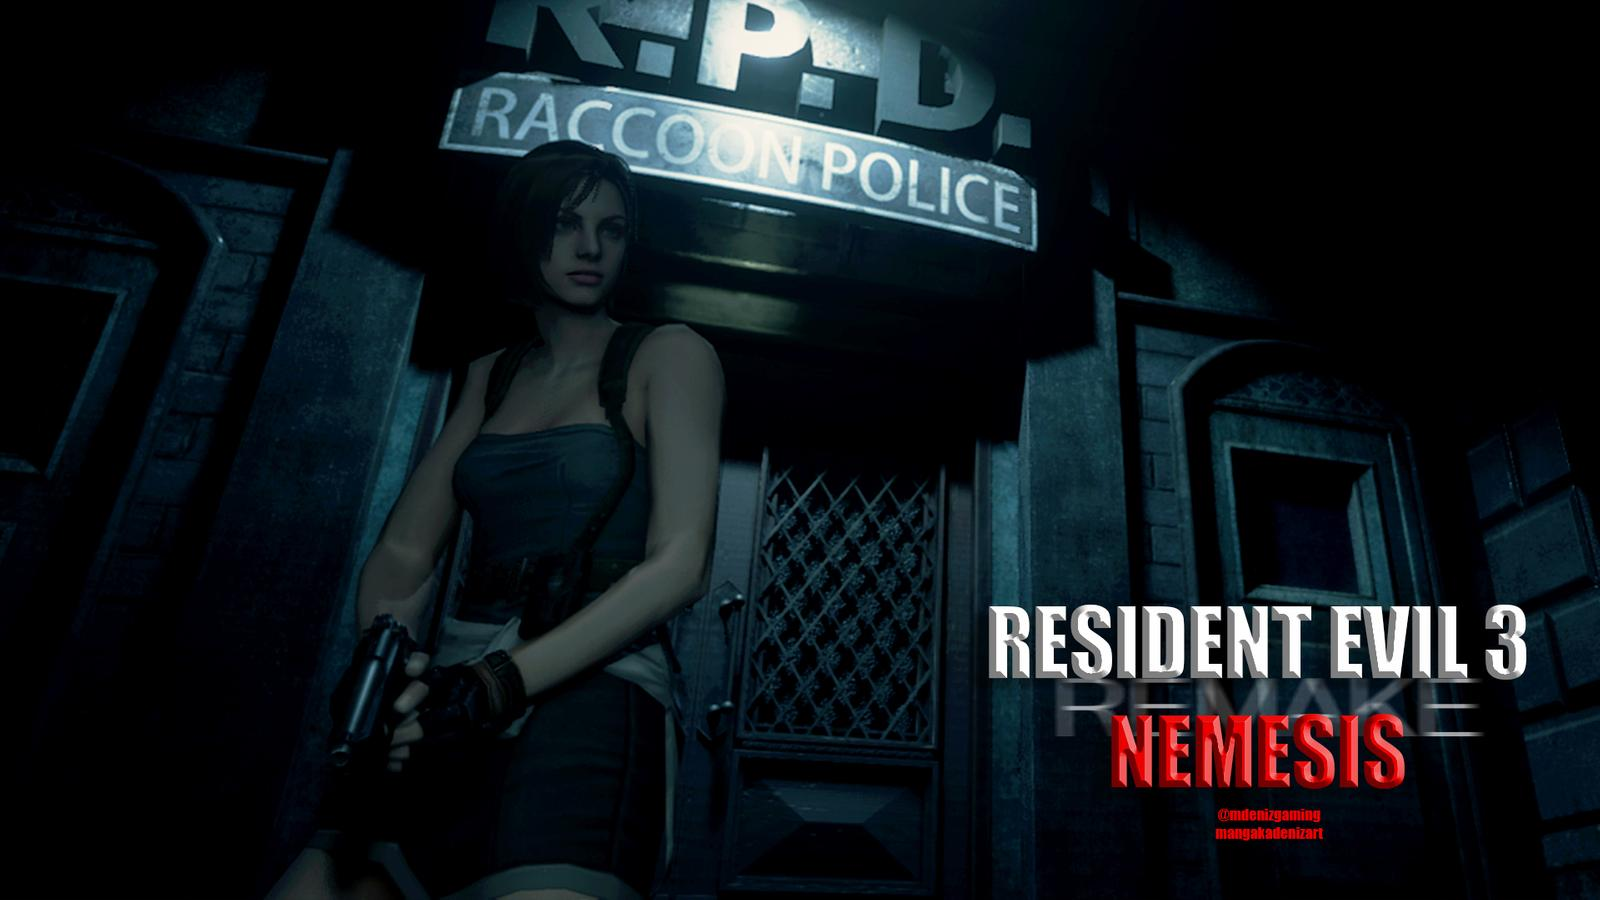 Resident Evil Nemesis Wallpaper Posted By Ryan Sellers